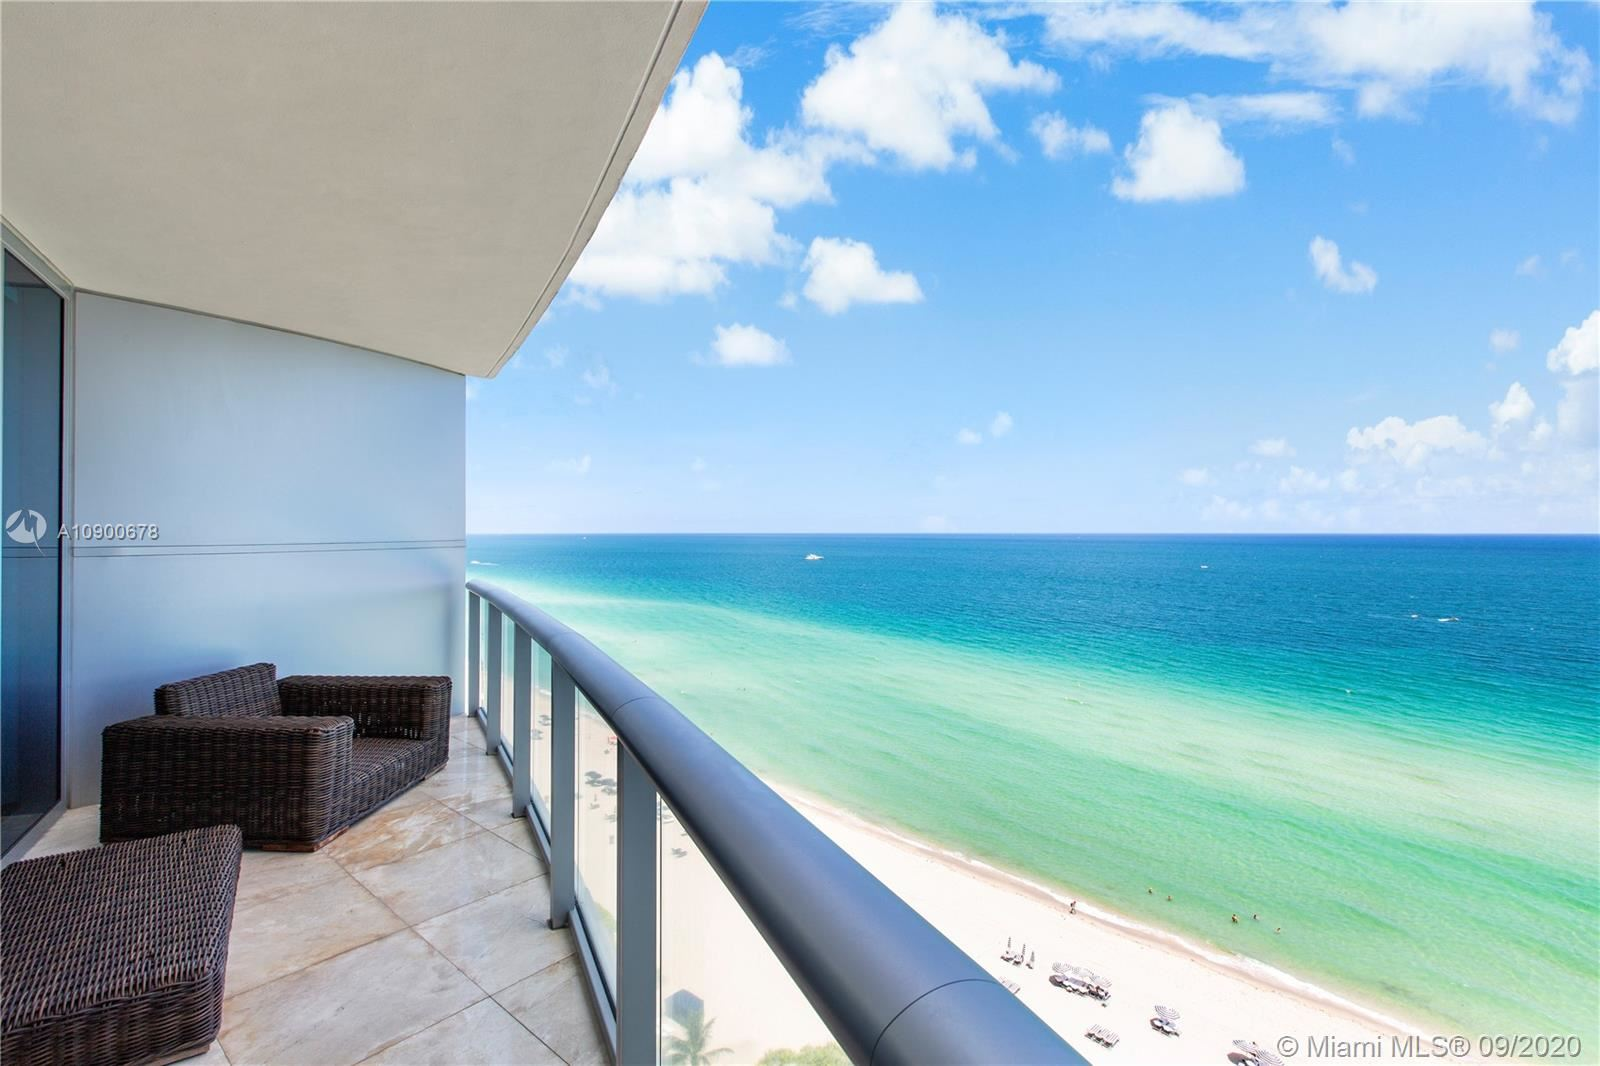 17001 Collins Ave #1705, Sunny Isles, FL 33160 - #: A10900678